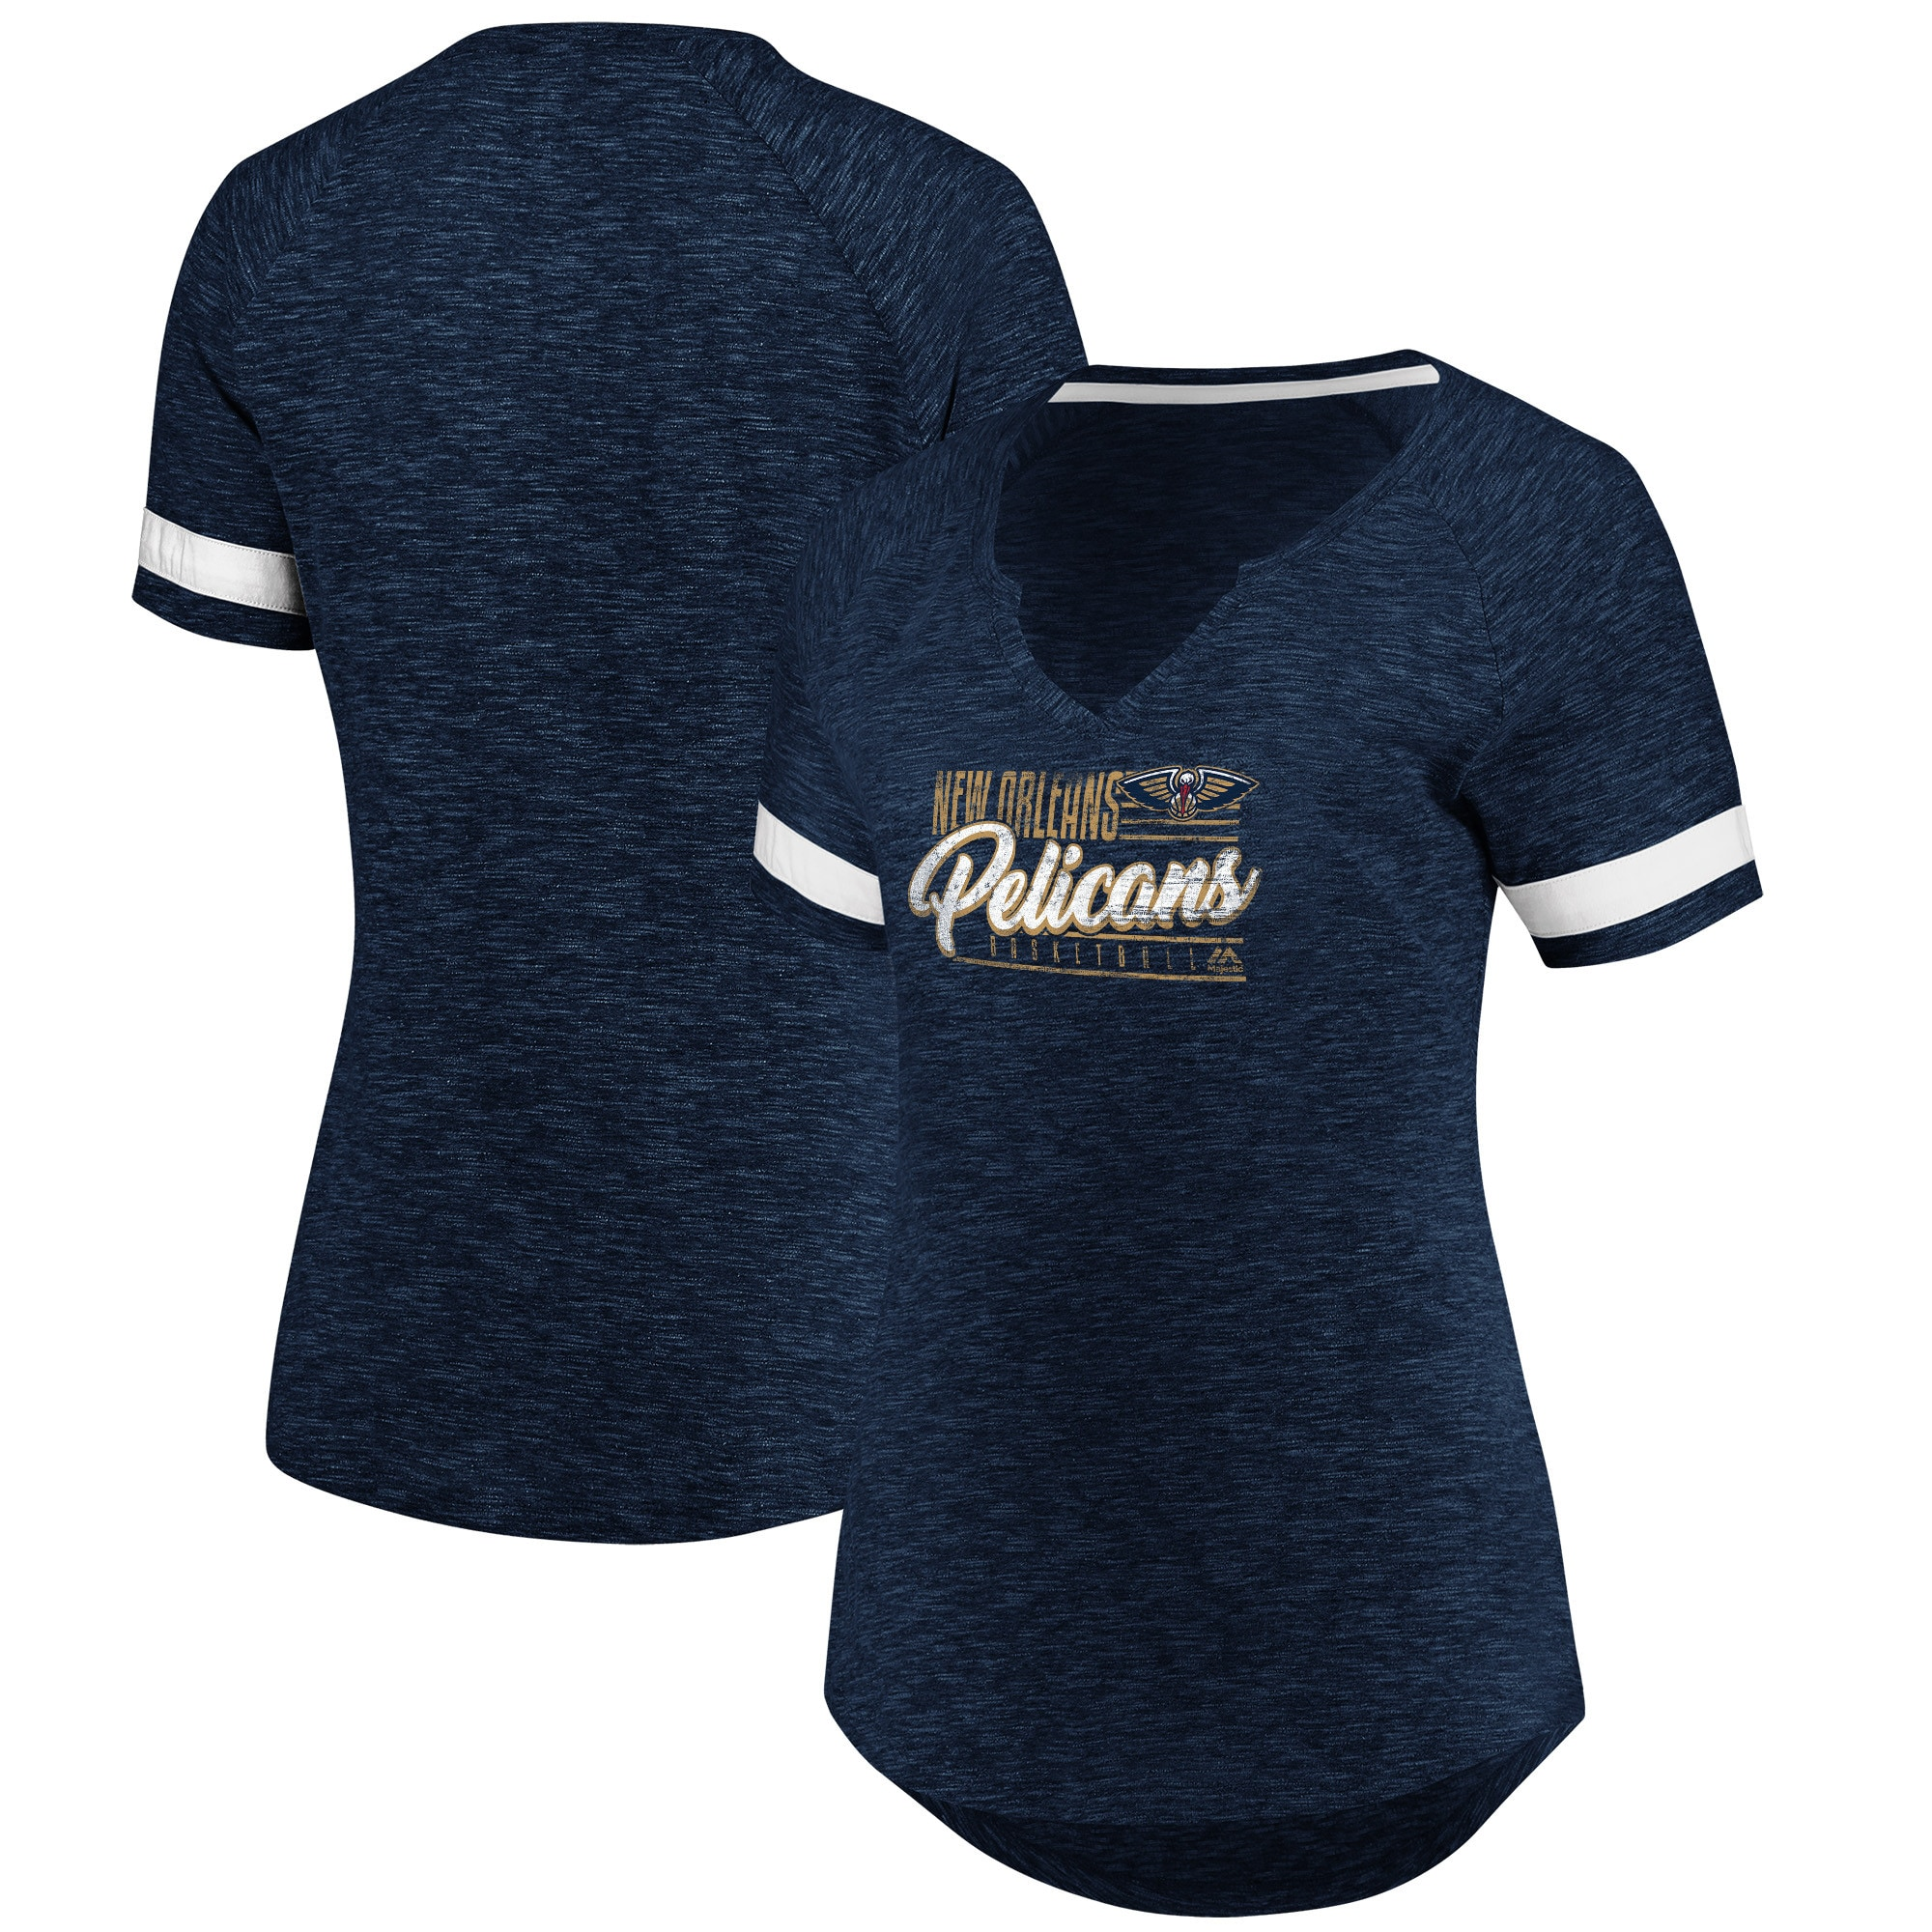 New Orleans Pelicans Fanatics Branded Women's Showtime Winning With Pride Notch Neck T-Shirt - Navy/White